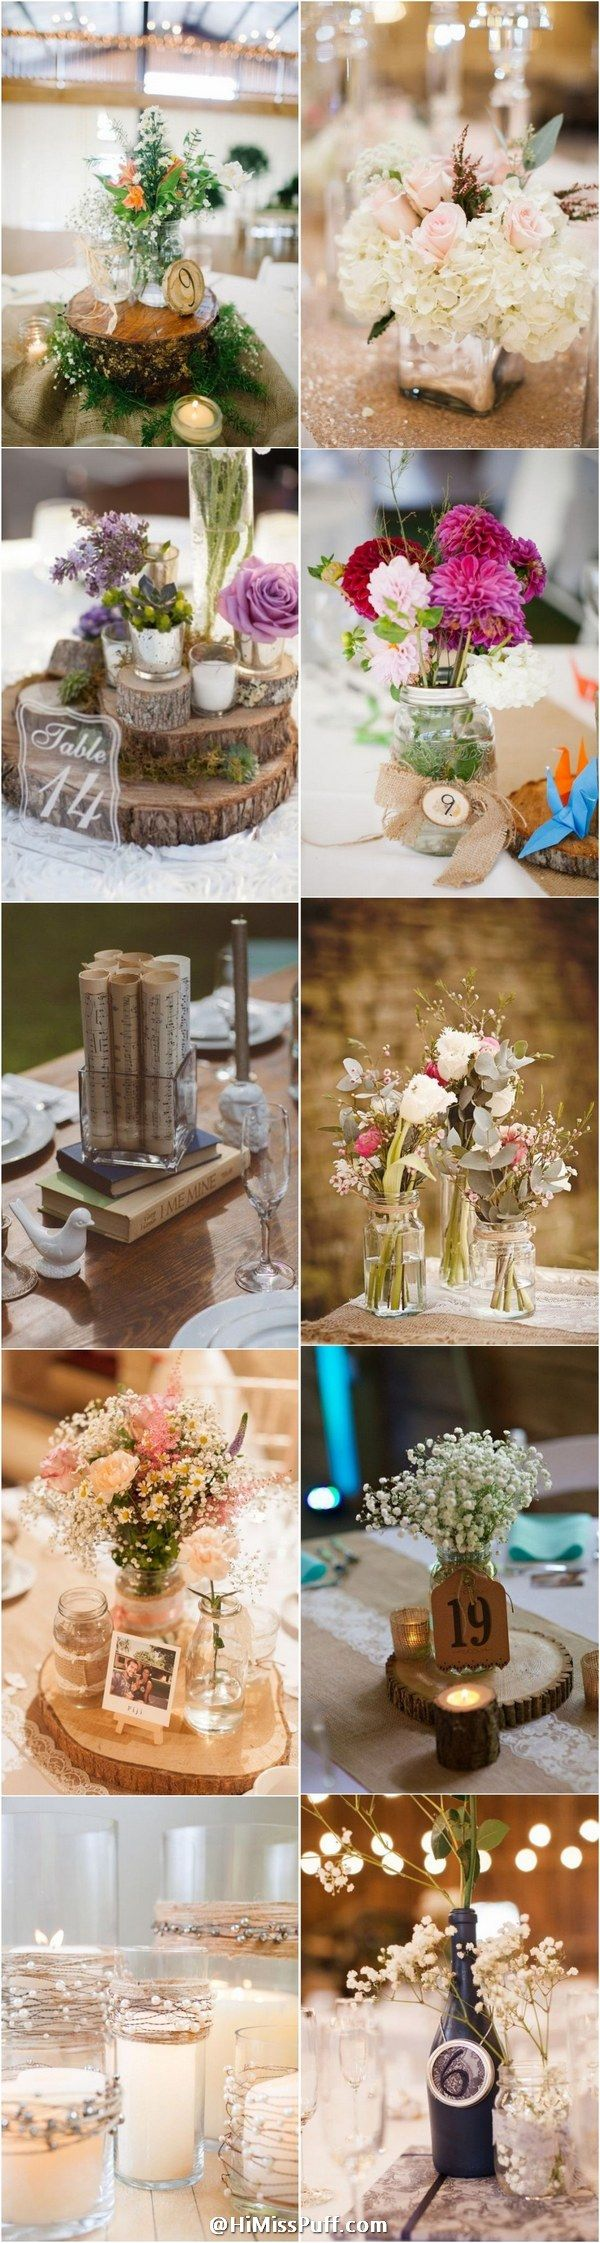 1000 Ideas About Country Wedding Centerpieces On Pinterest